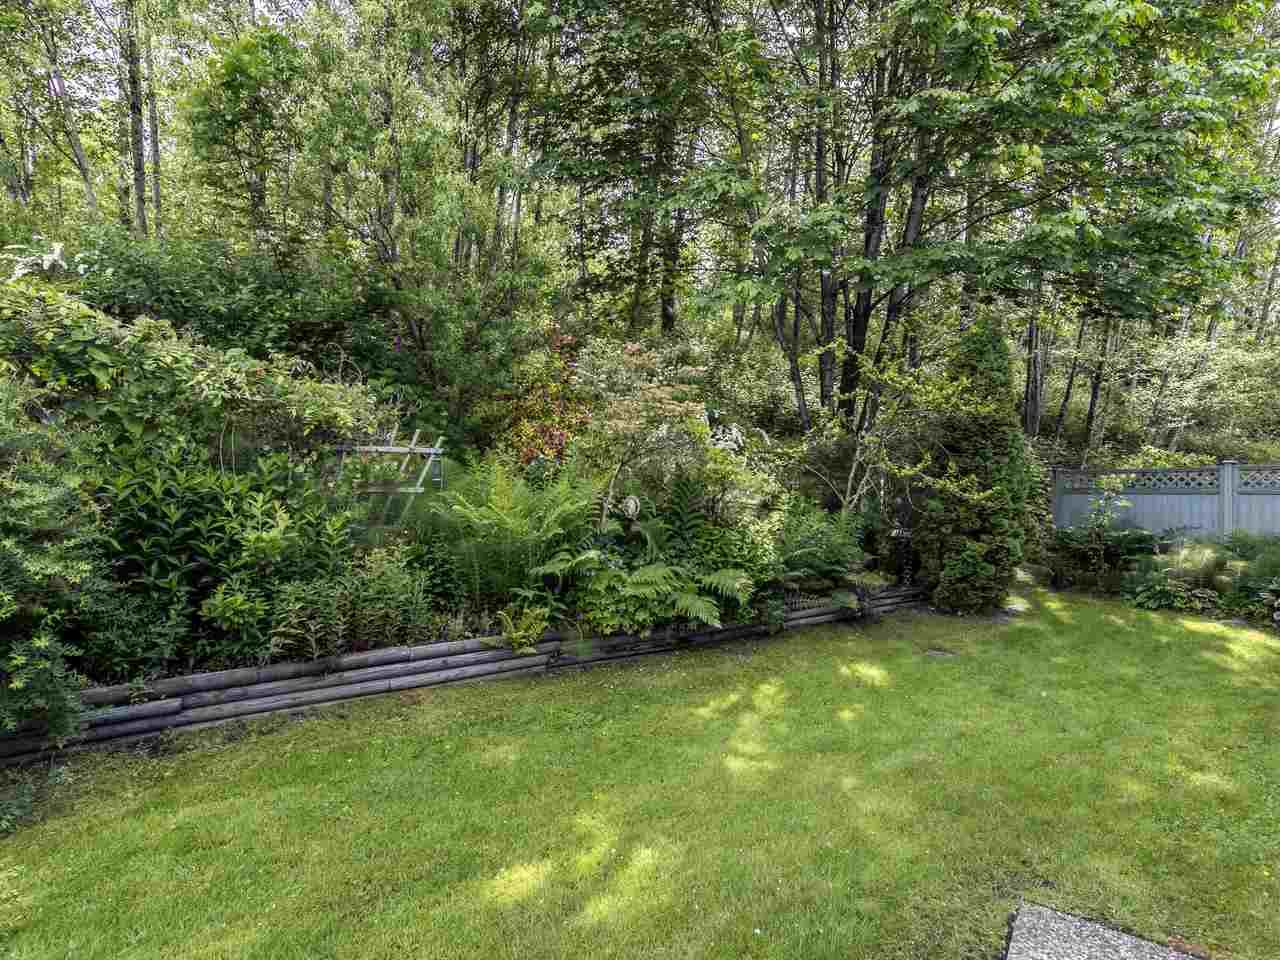 """Photo 10: Photos: 127 22555 116 Avenue in Maple Ridge: East Central Townhouse for sale in """"HILLSIDE"""" : MLS®# R2493046"""